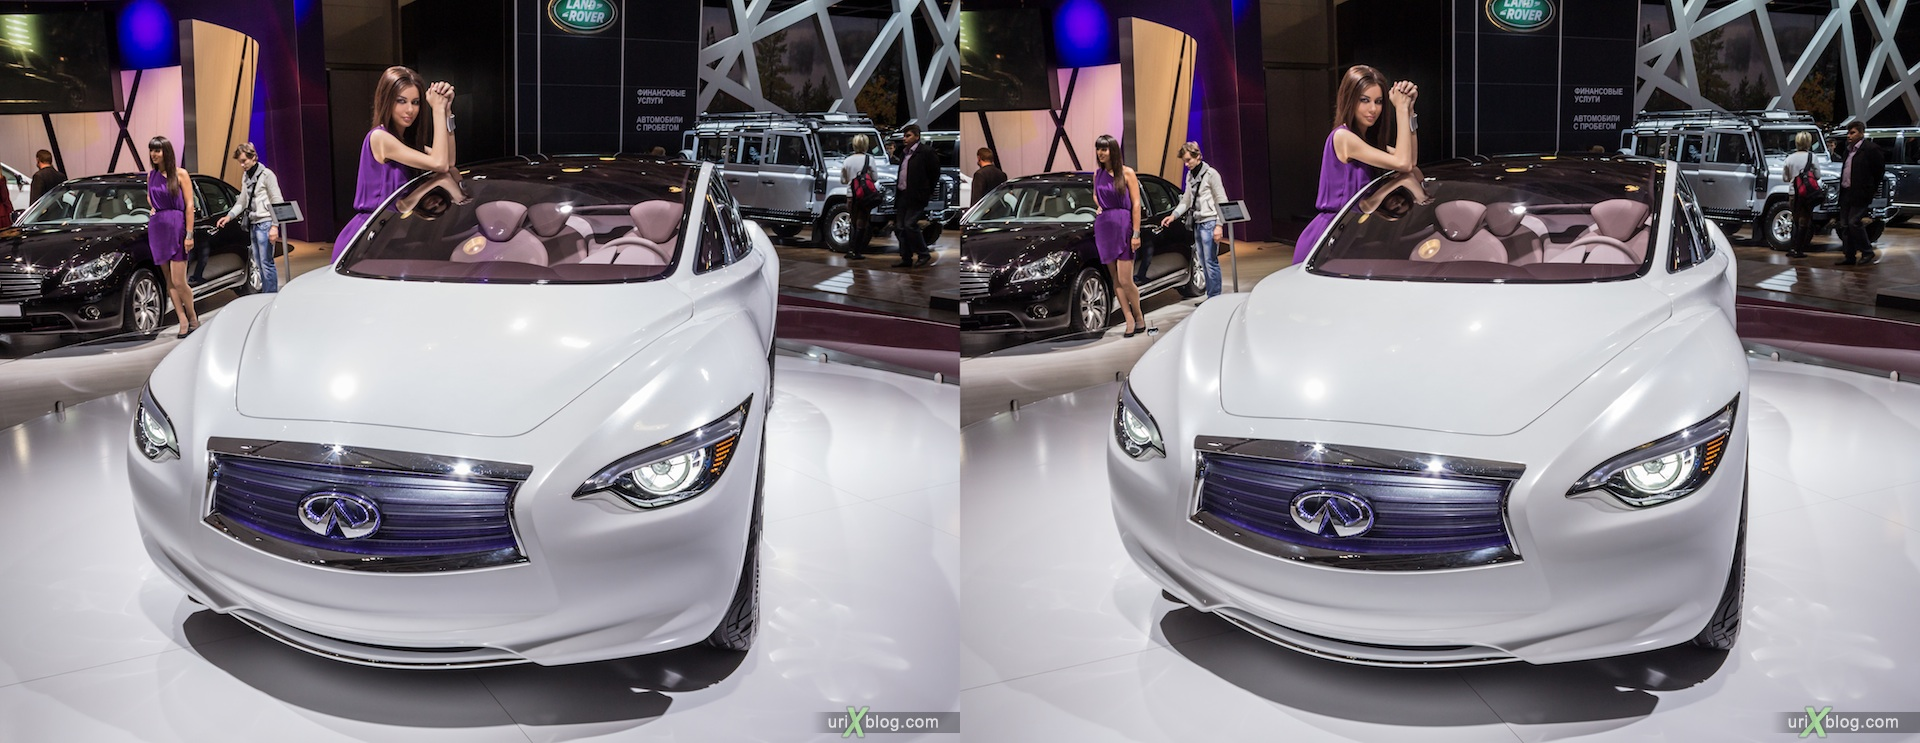 2012, Moscow International Automobile Salon, auto show, 3D, stereo pair, cross-eyed, crossview